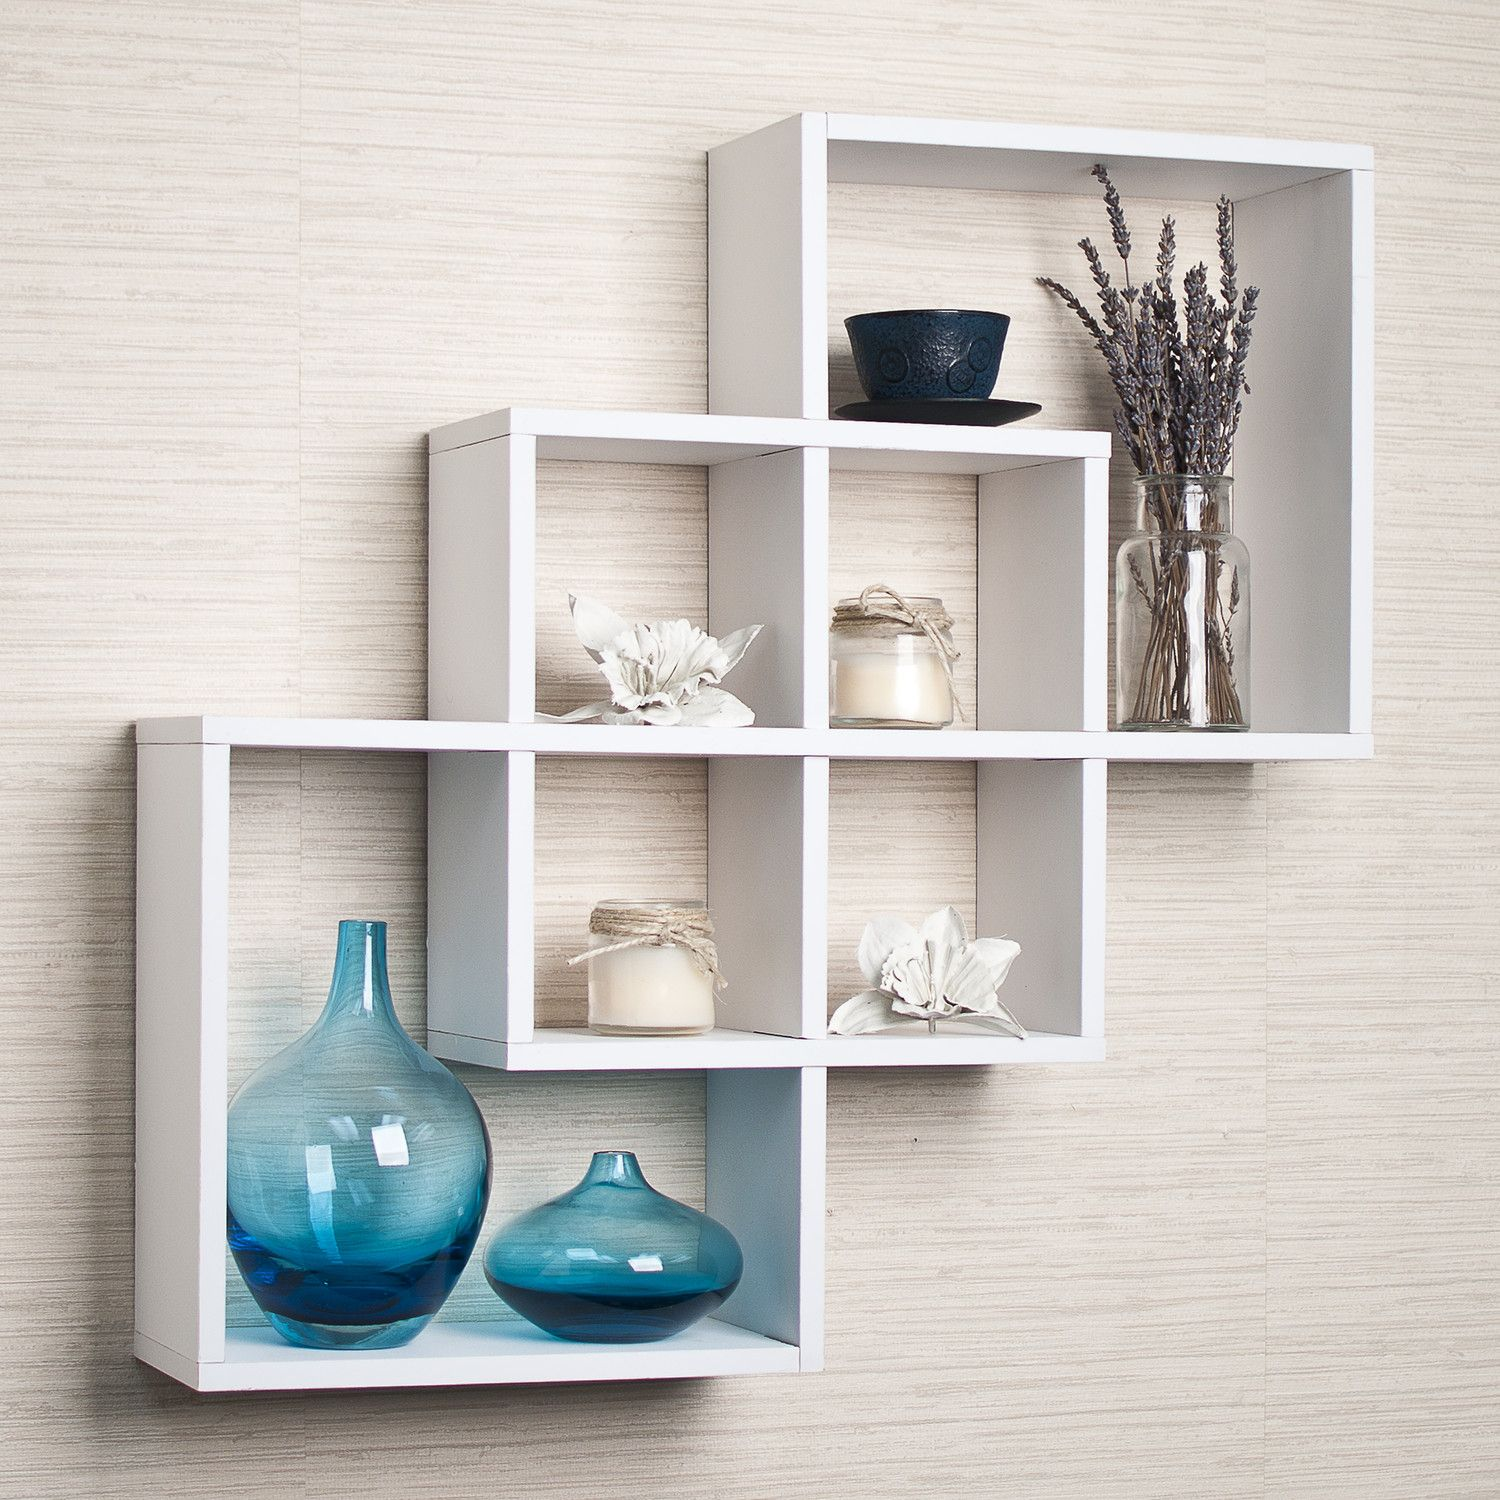 Captivating Marvellous Colorful Aluminum Wall Shelves Design With Mounted Astonishing  Three White Finish Wooden Floating Shelf On